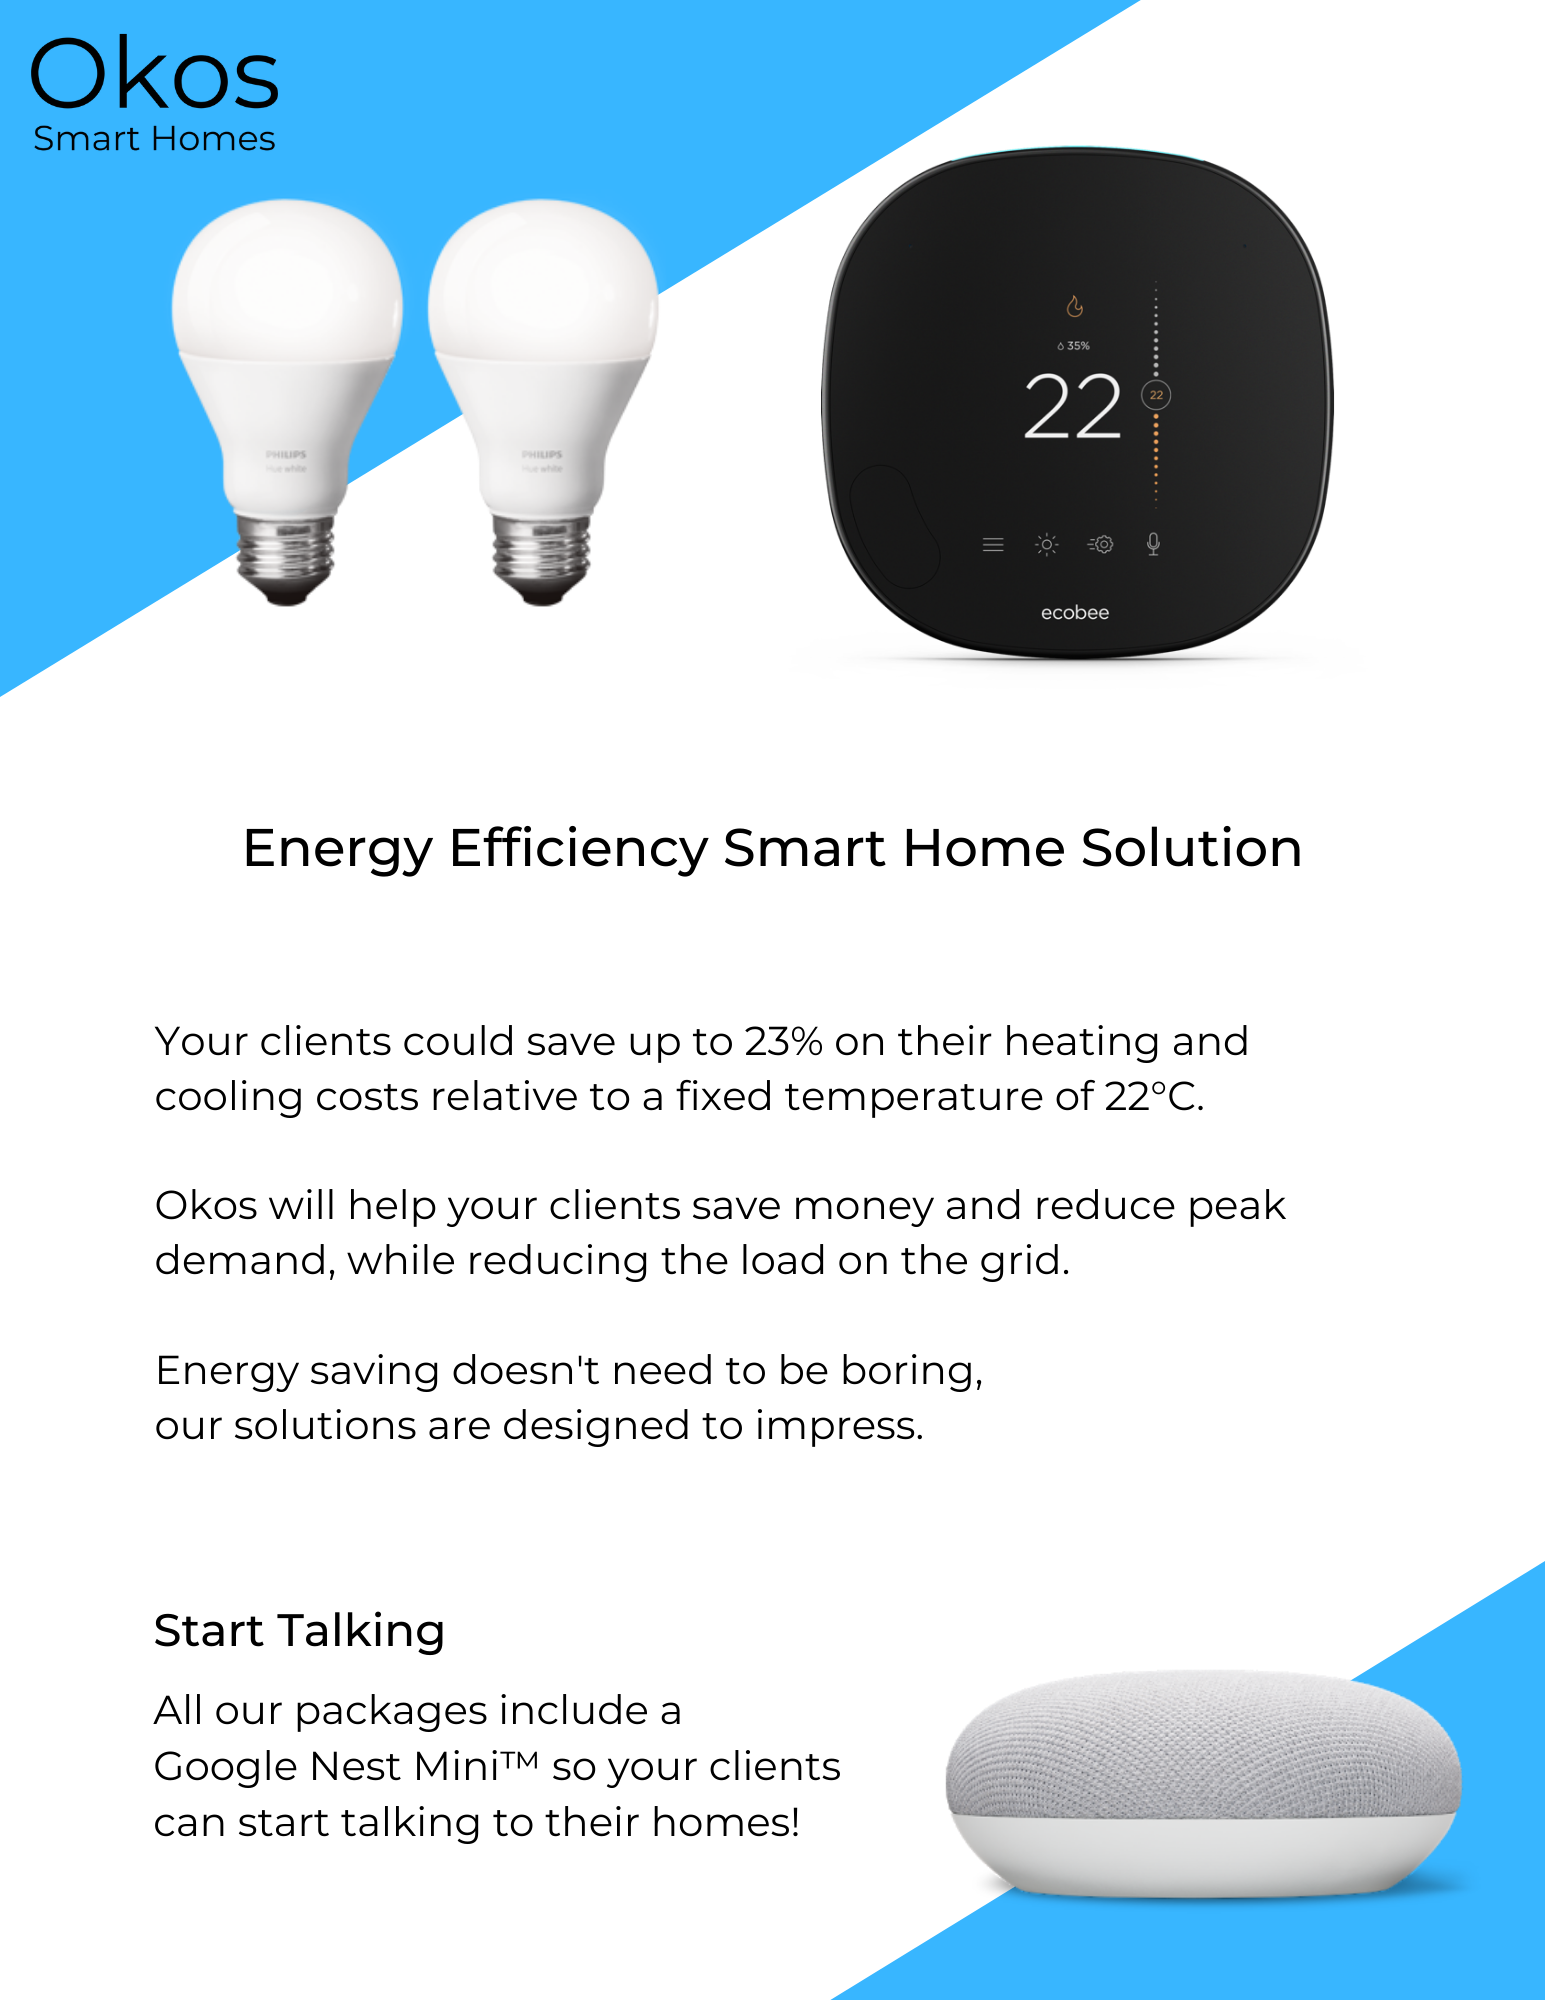 Gallery Energy Efficiency Smart Home Solution 2